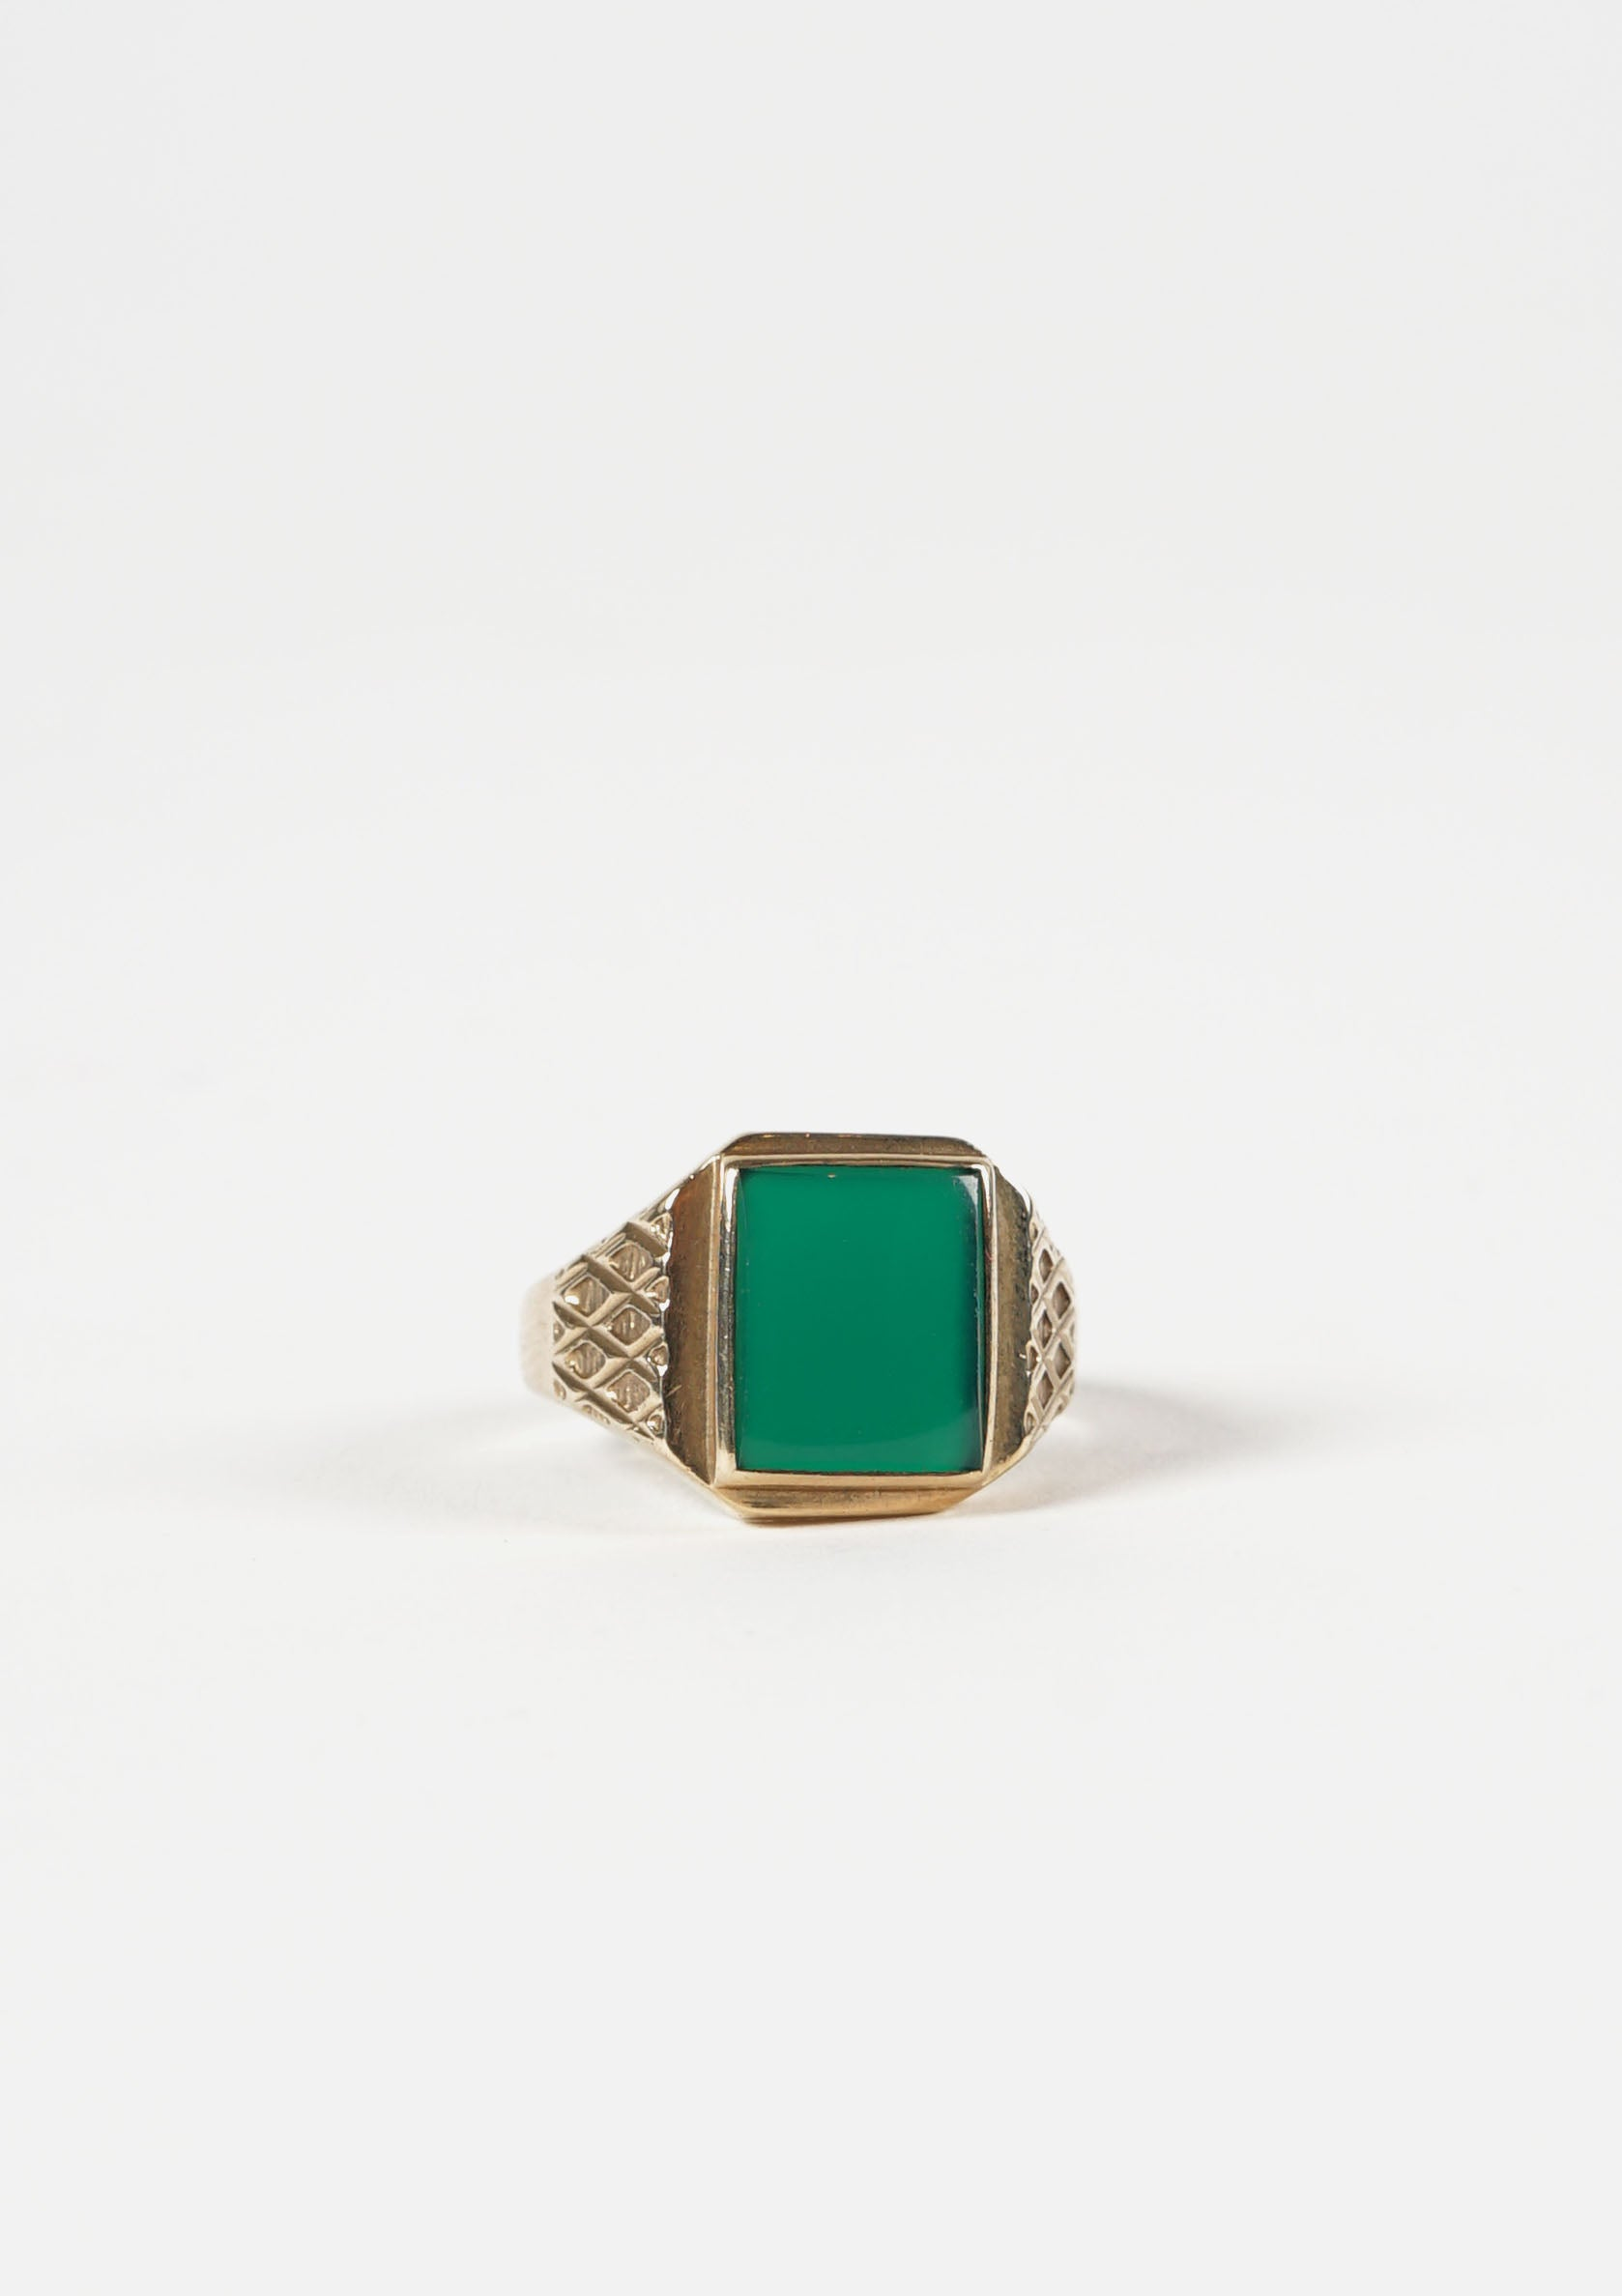 English Square Gold Ring